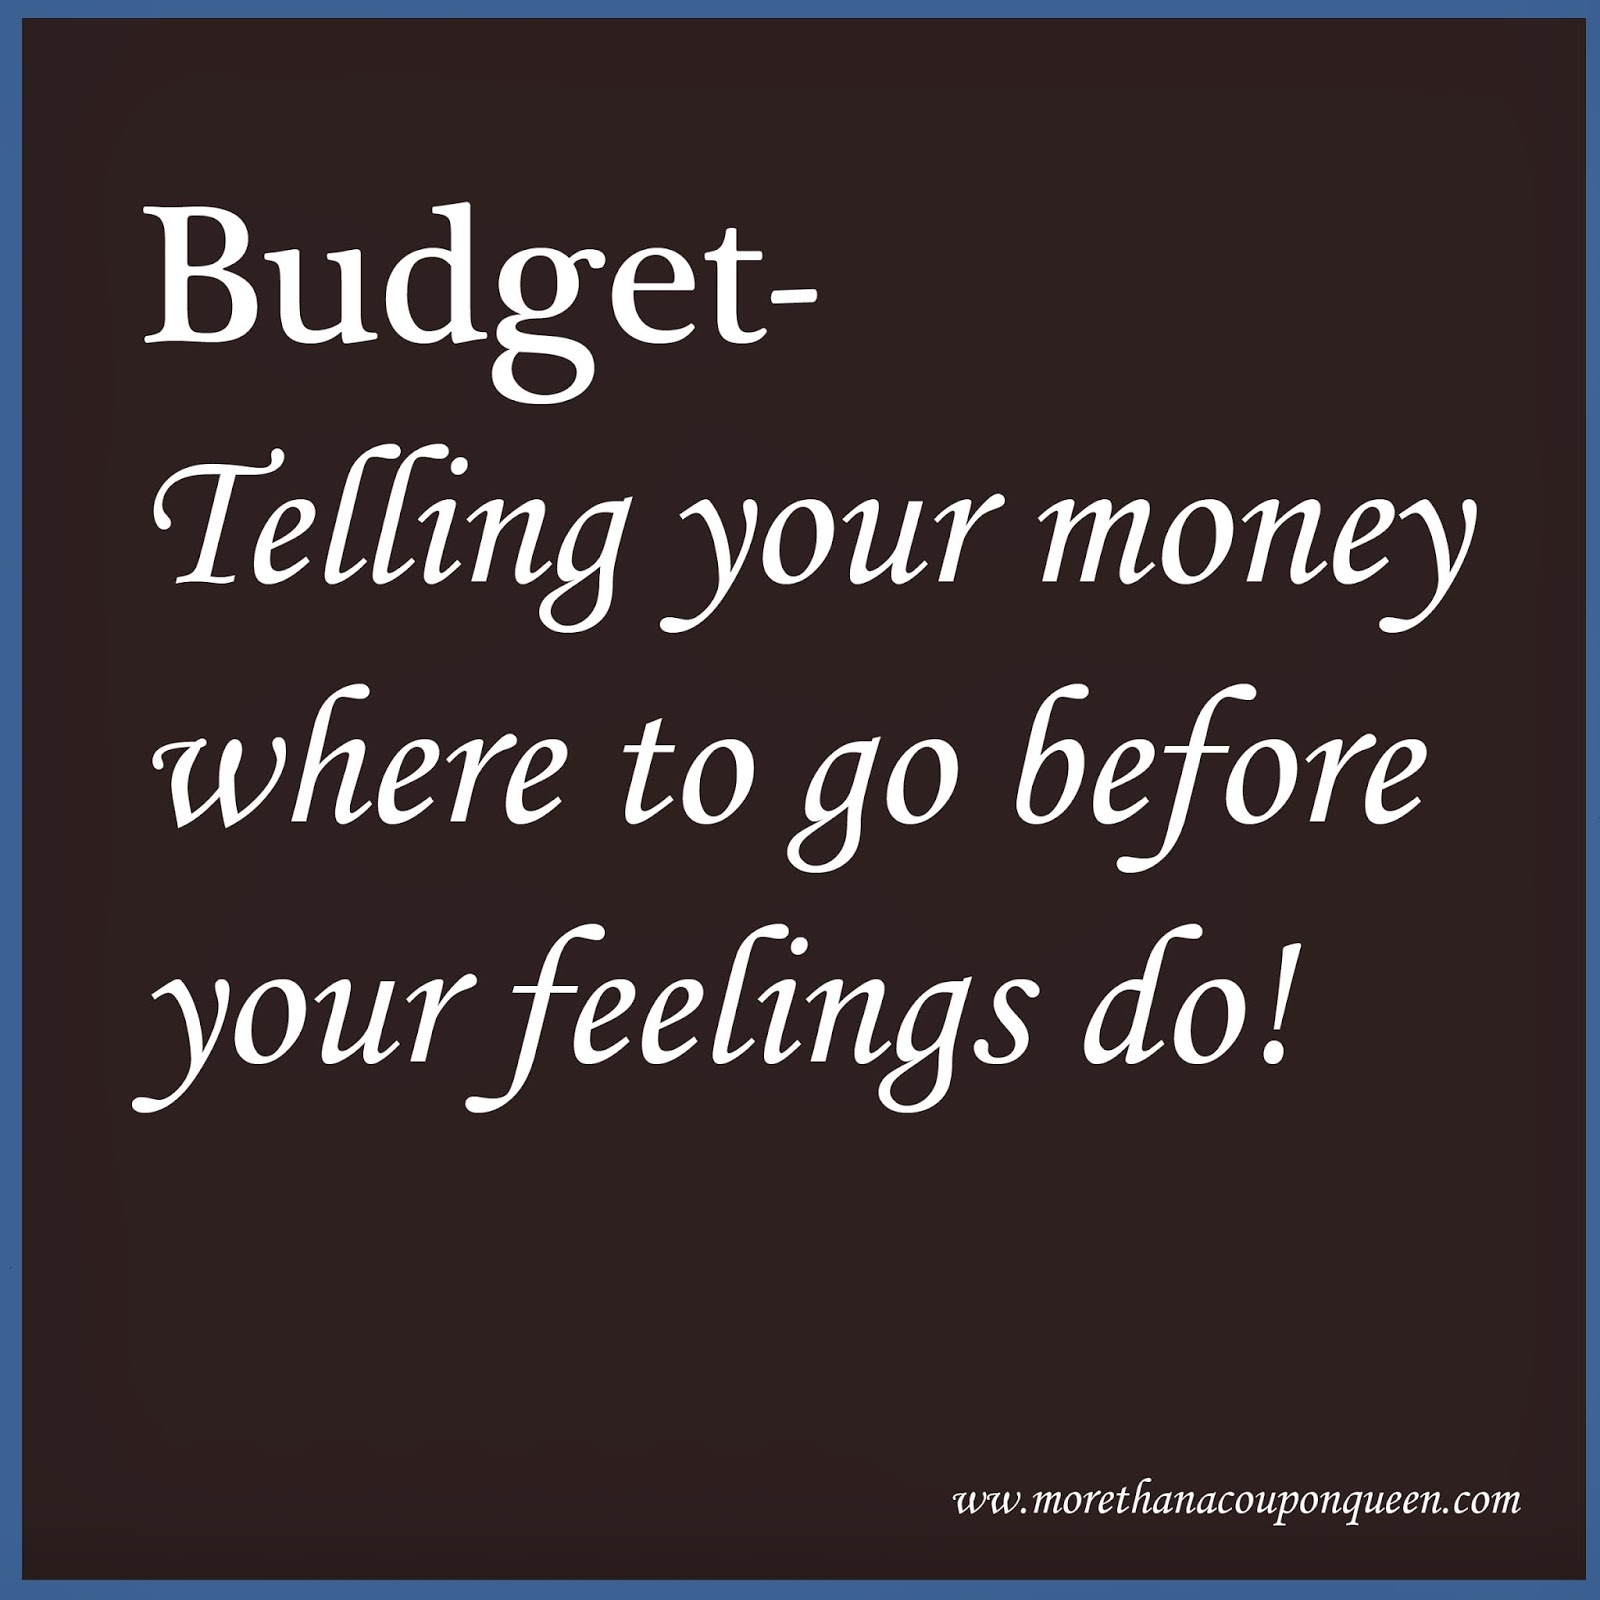 It S Always Confusing When It Comes To House Plan While: Why Should I Have A Budget?